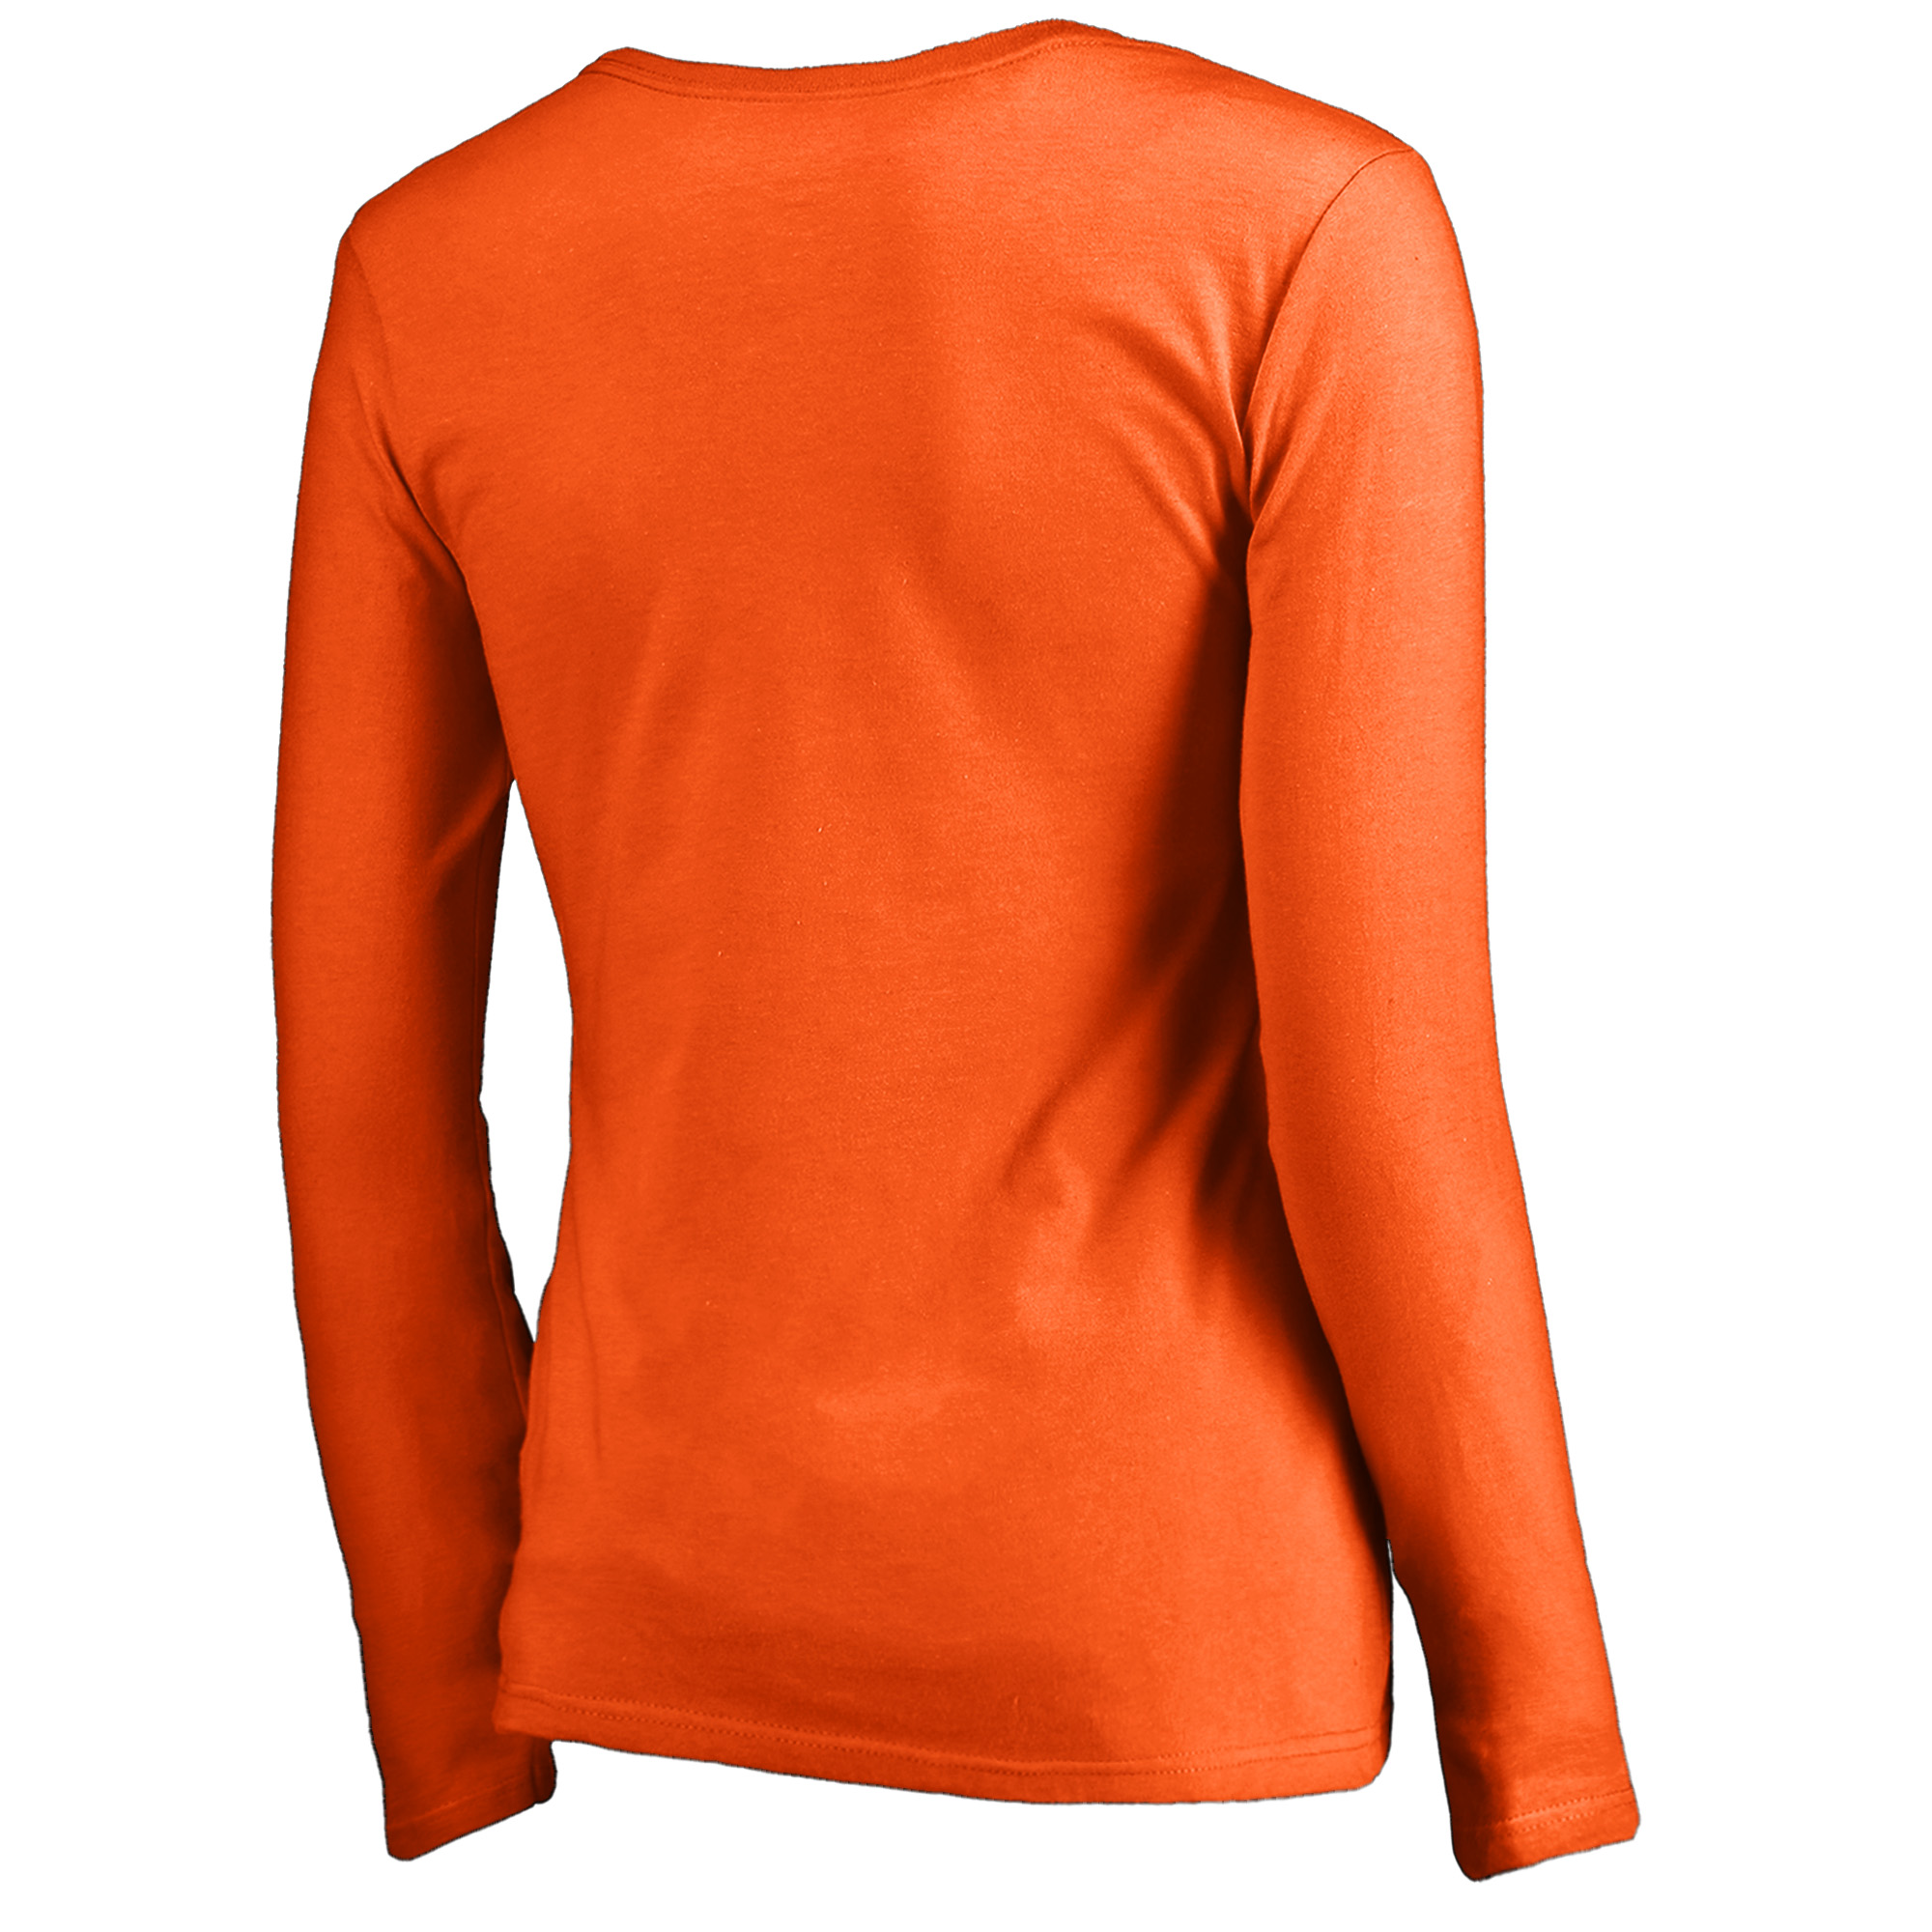 654d05b6ba9 Baltimore Orioles Fanatics Branded Women s Cooperstown Collection Slider  Long Sleeve V-Neck T-Shirt - Orange - Walmart.com